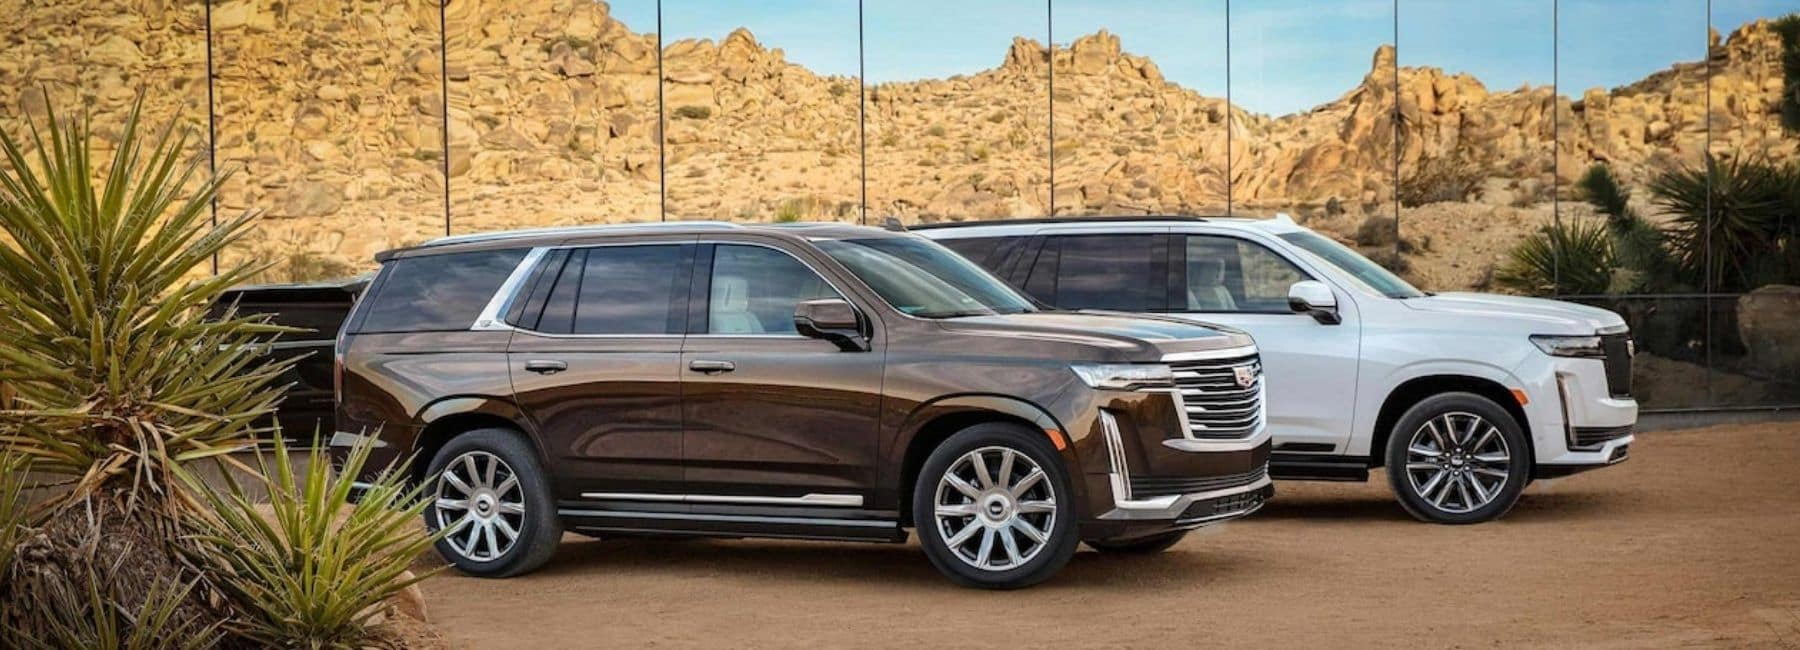 2021 Cadillac Escalades Parked In The Desert